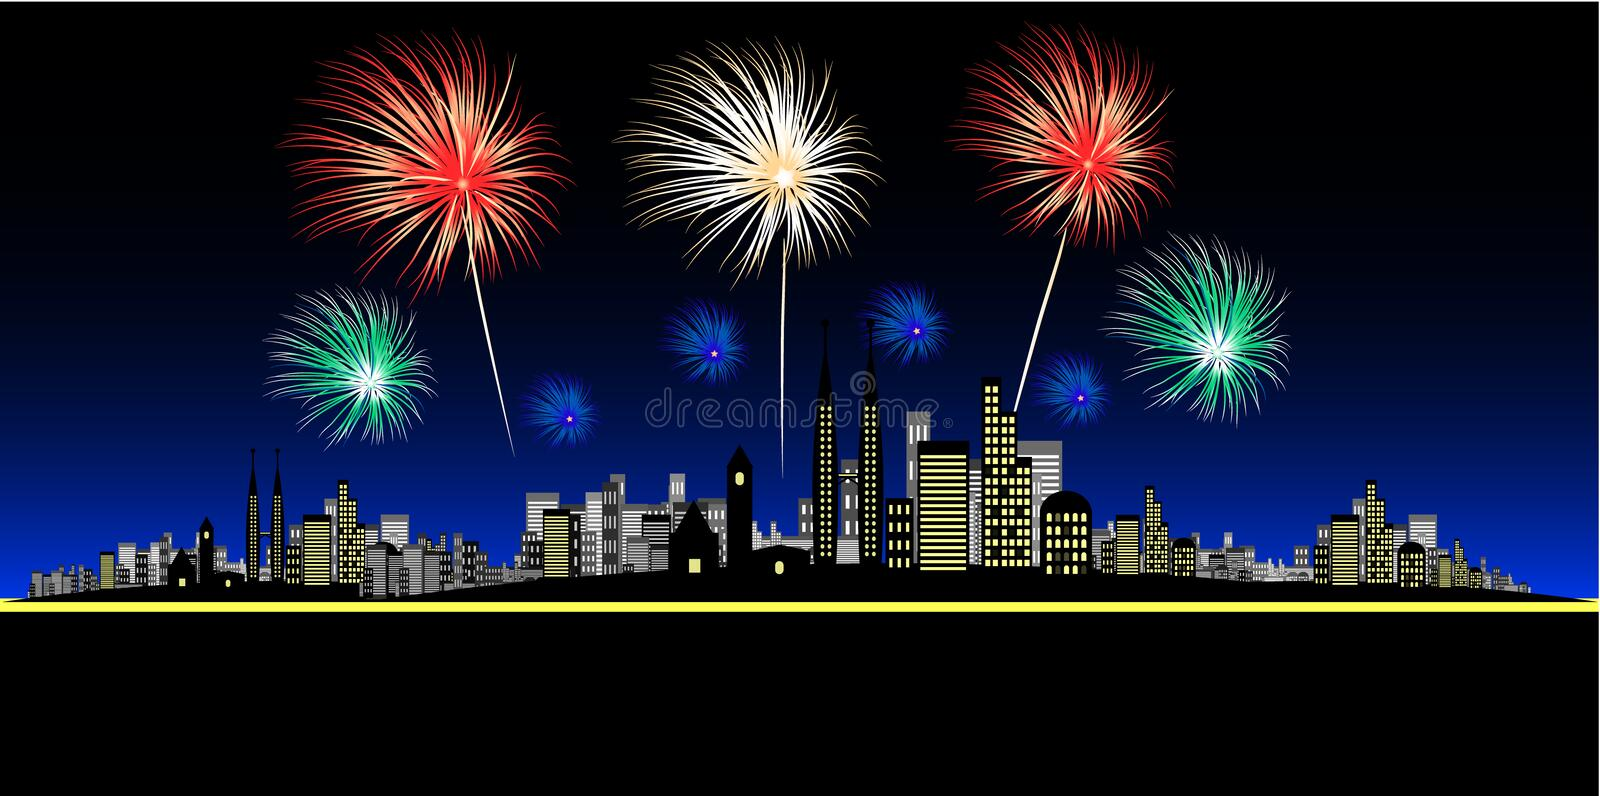 Fireworks Vector. Vector - Fireworks over a big and bright city. Concept: Celebration or new year vector illustration